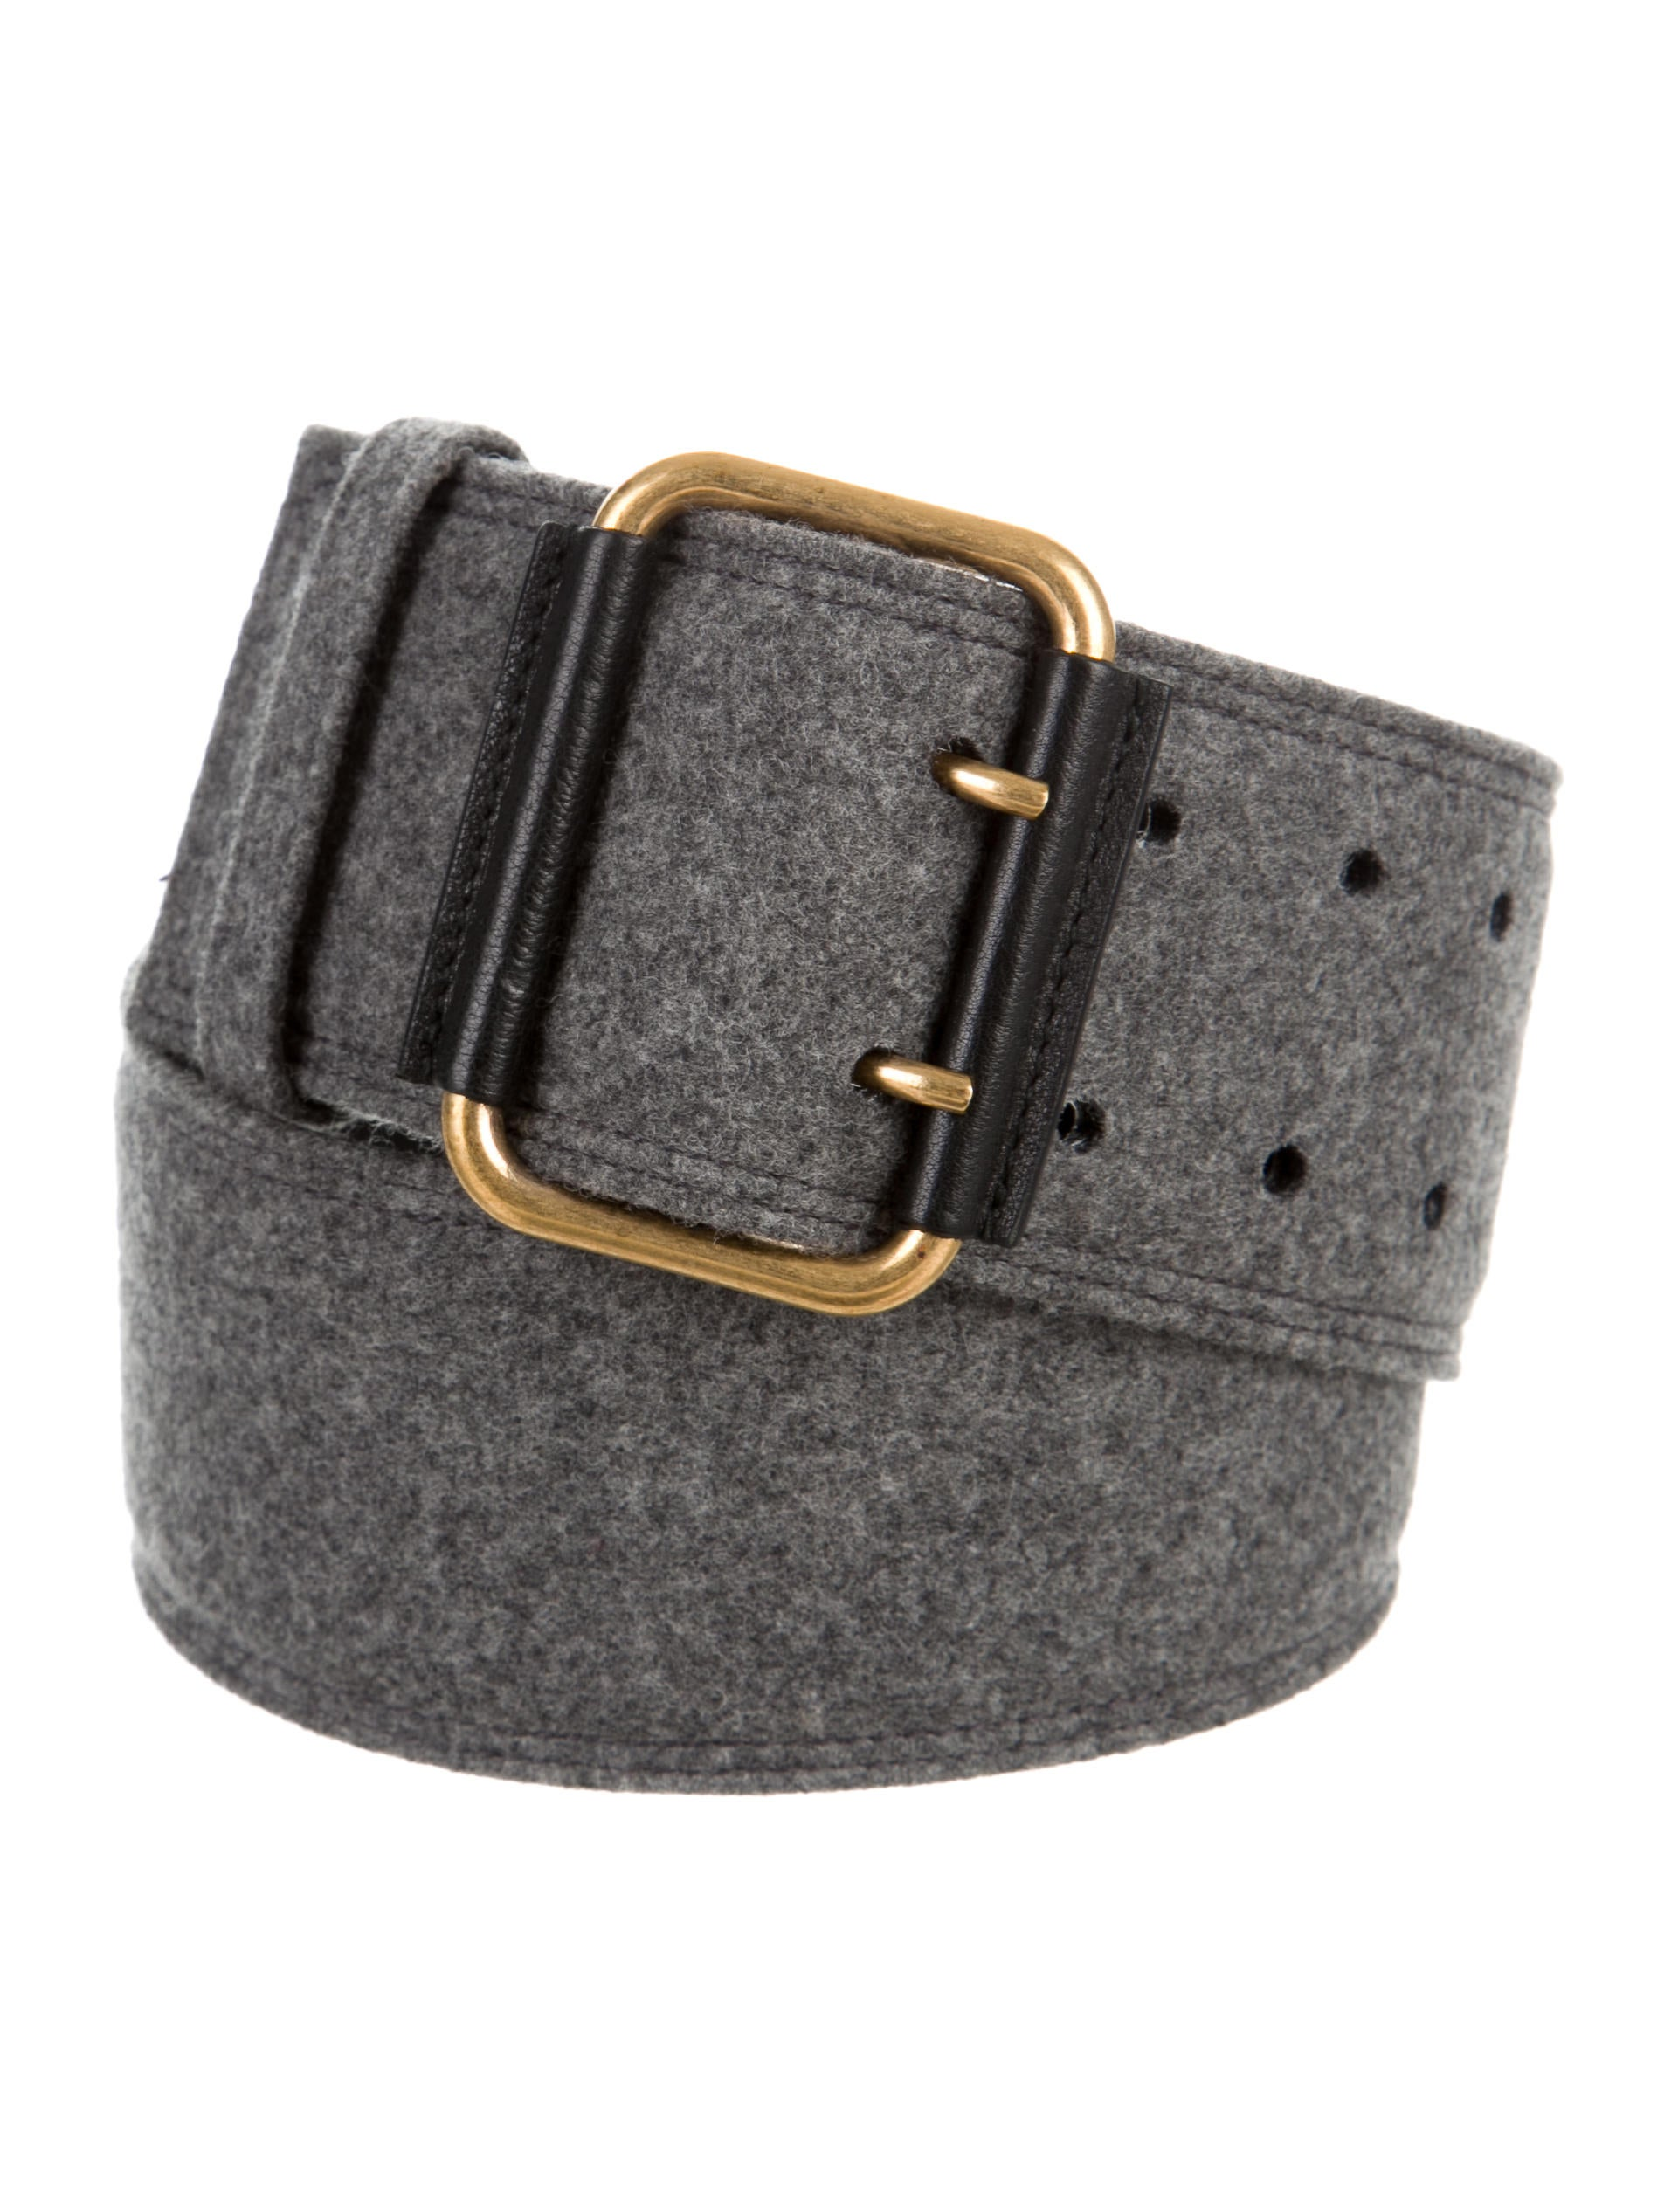 Yves Saint Laurent Tweed Waist Belt Accessories